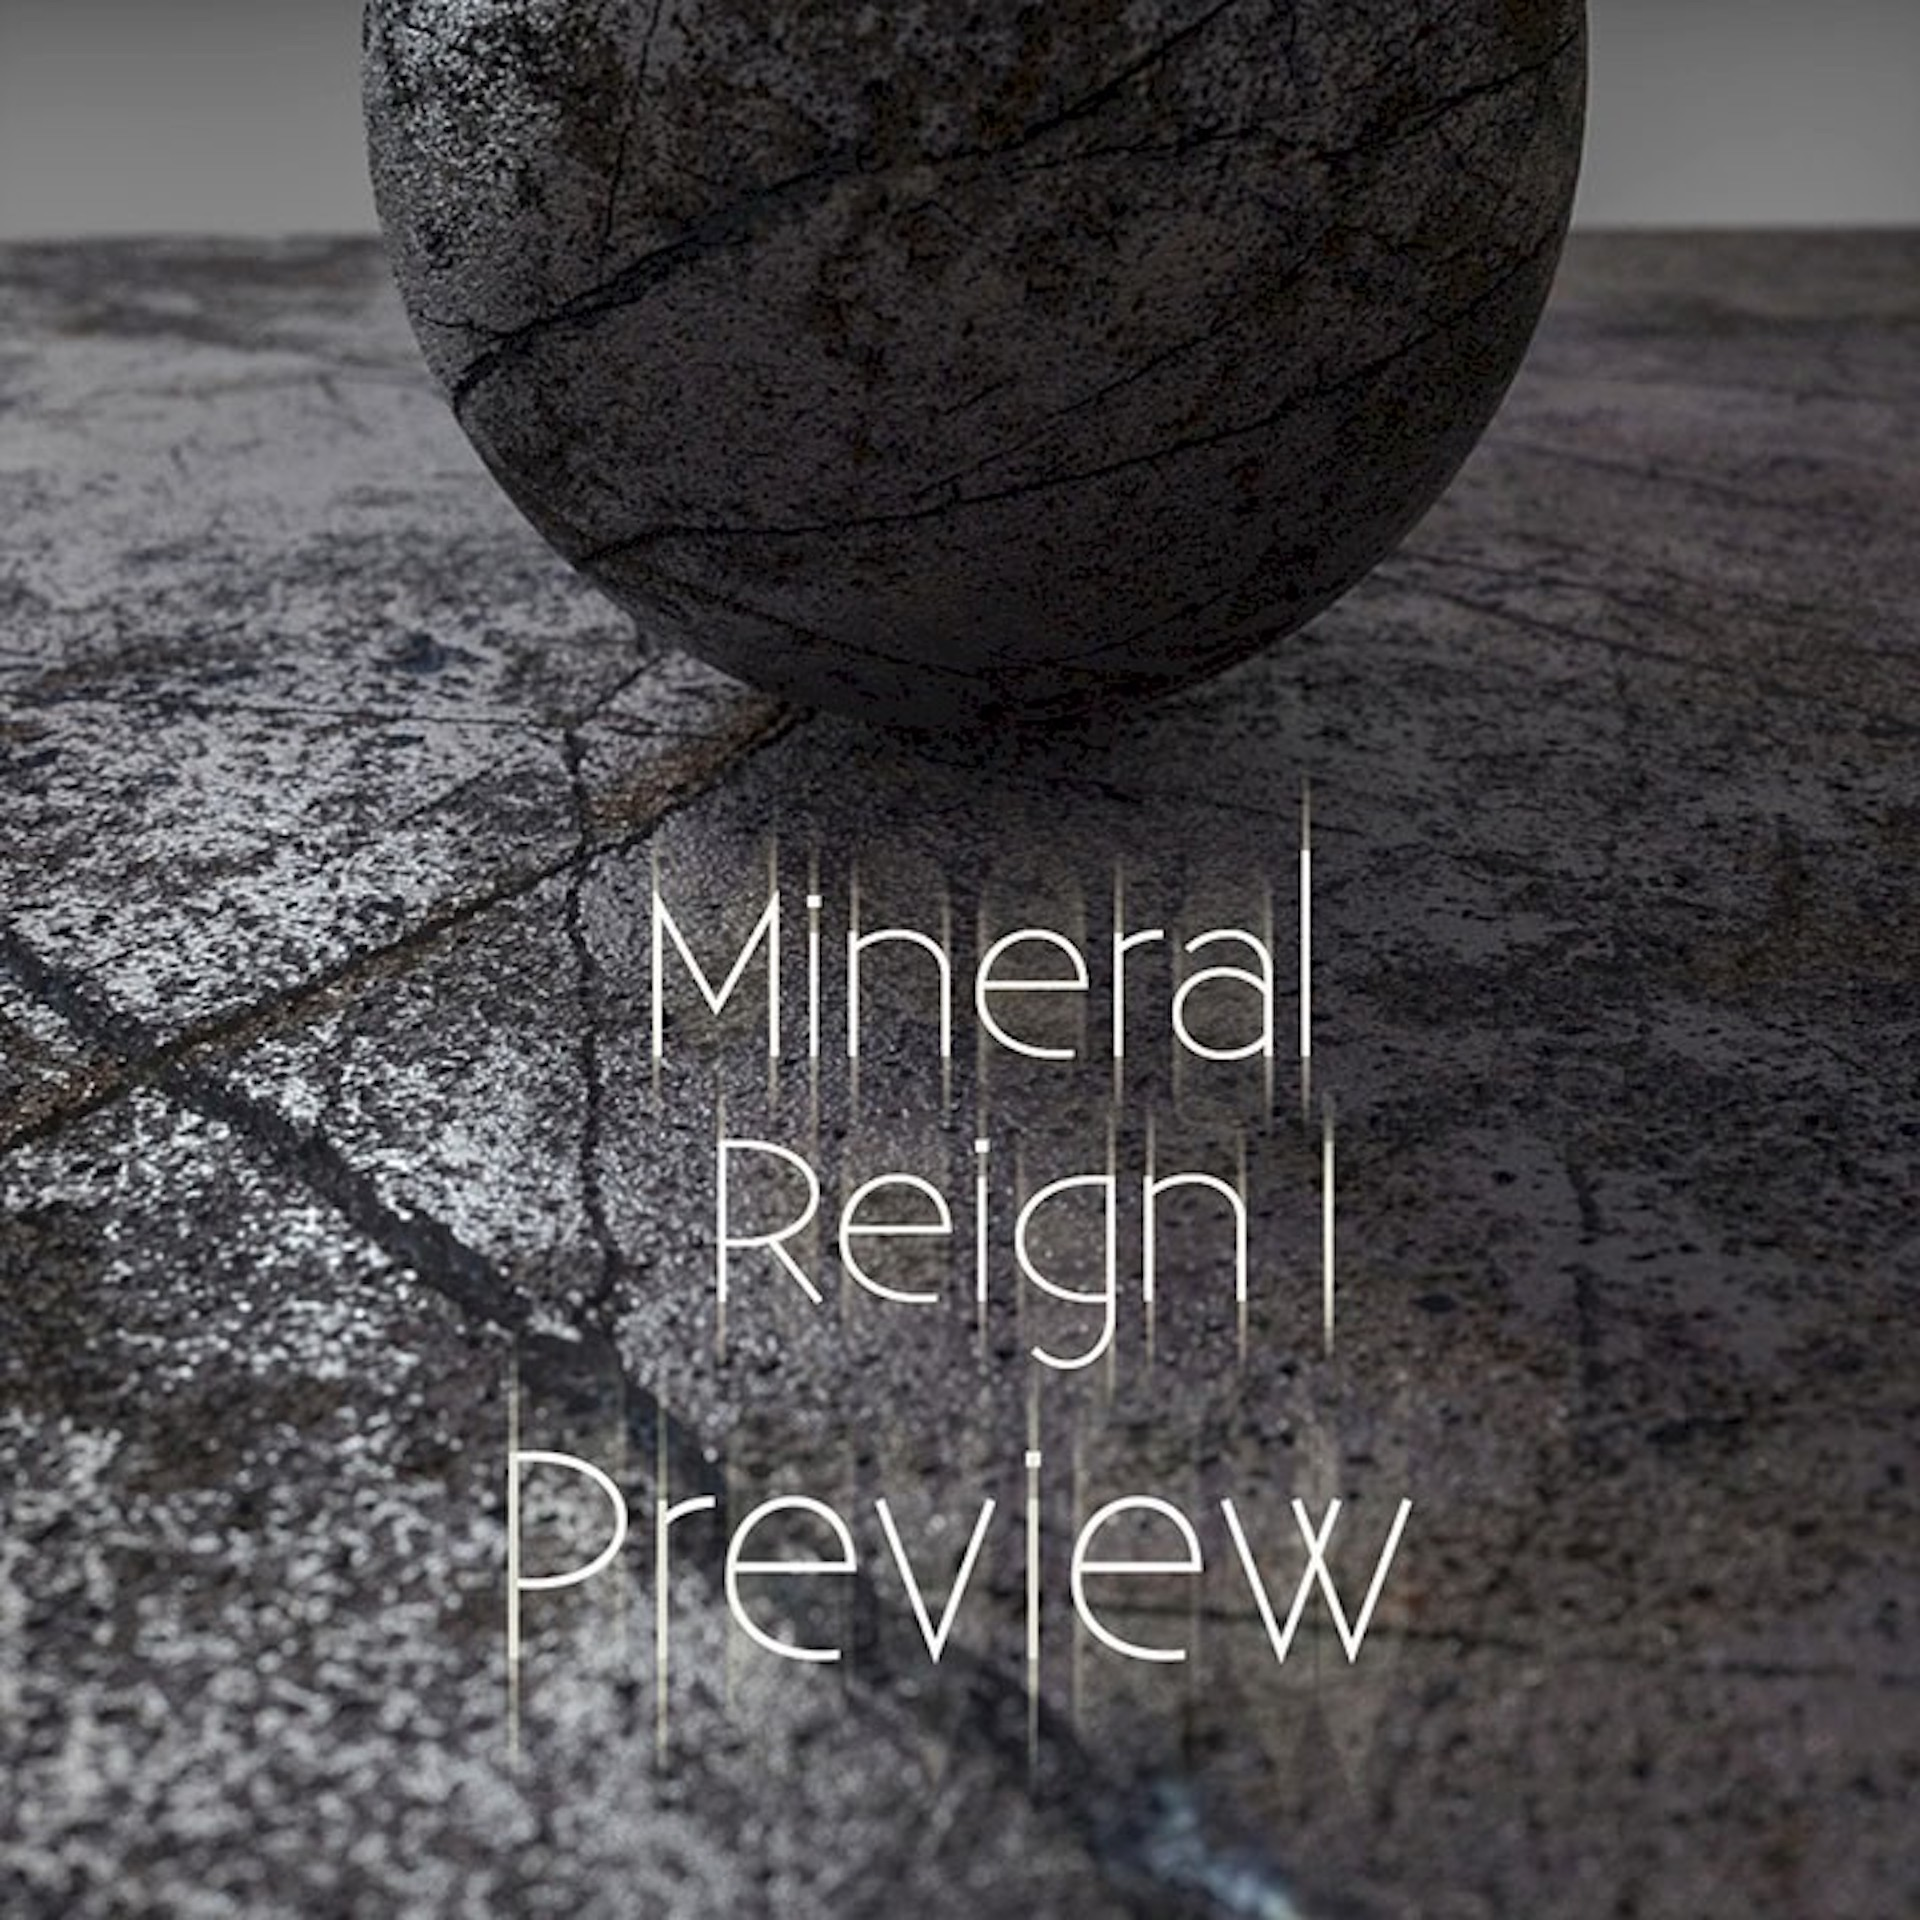 Mineral reign I - Preview - Textures - Download - C4Dzone